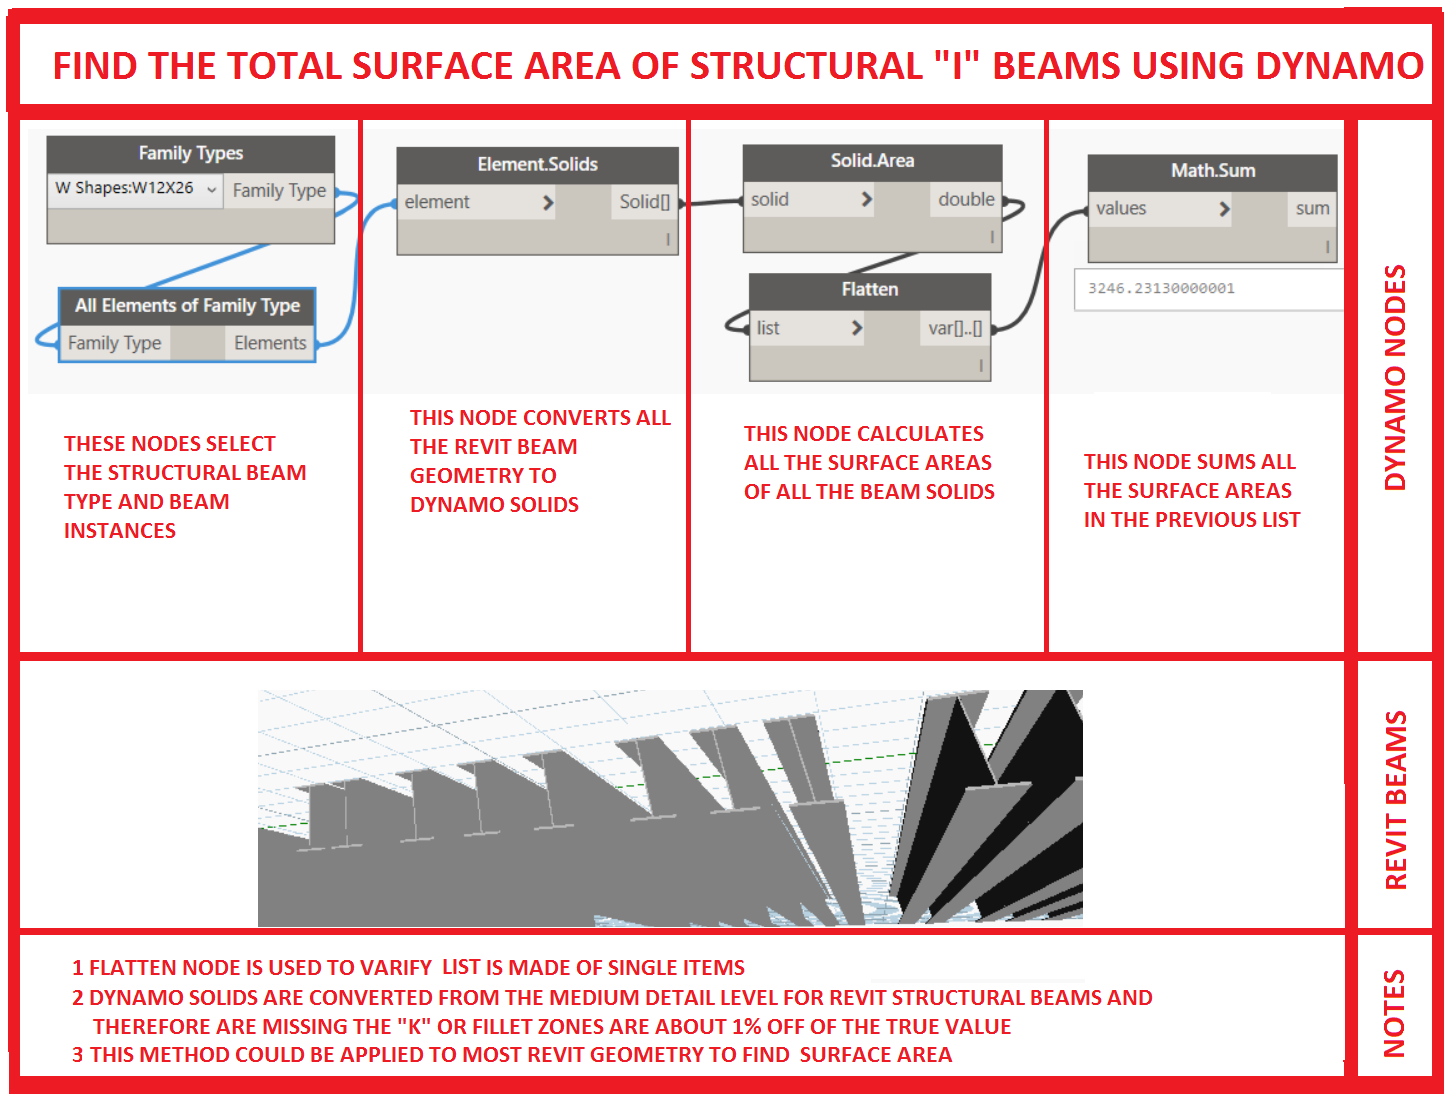 I Was Inspired To Show This Workflow Because A Contractor Friend Of Mine  Asked Me How They Could Calculate All The Surface Areas From Each Steel  Beam Type